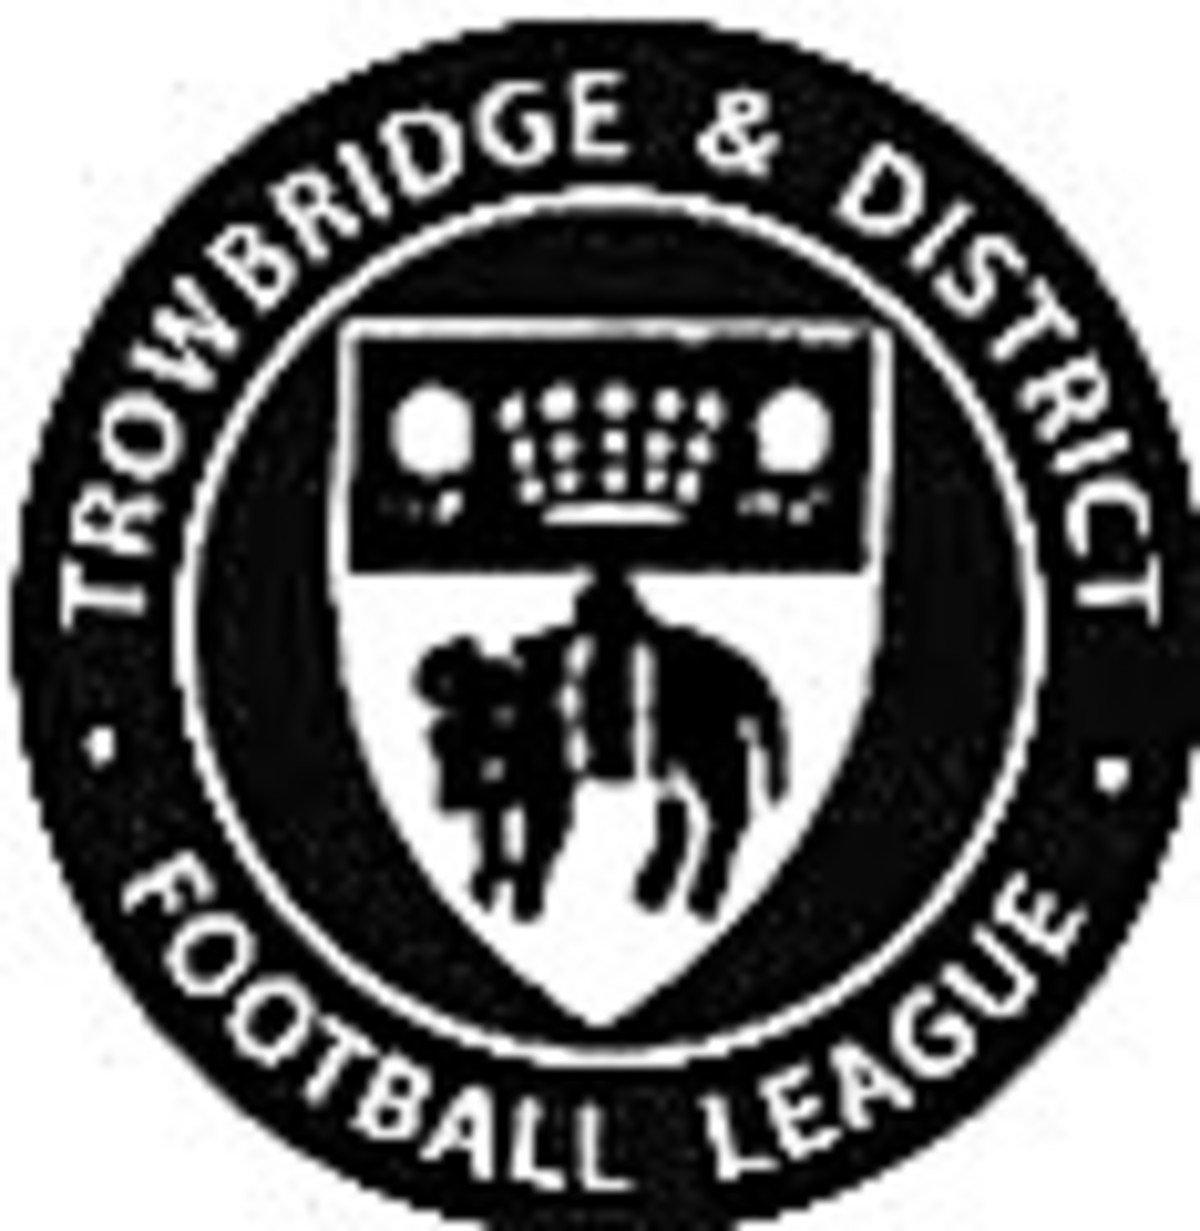 TROWBRIDGE & DISTRICT LEAGUE DIVISION ONE: Luxol beat Westbury to move top